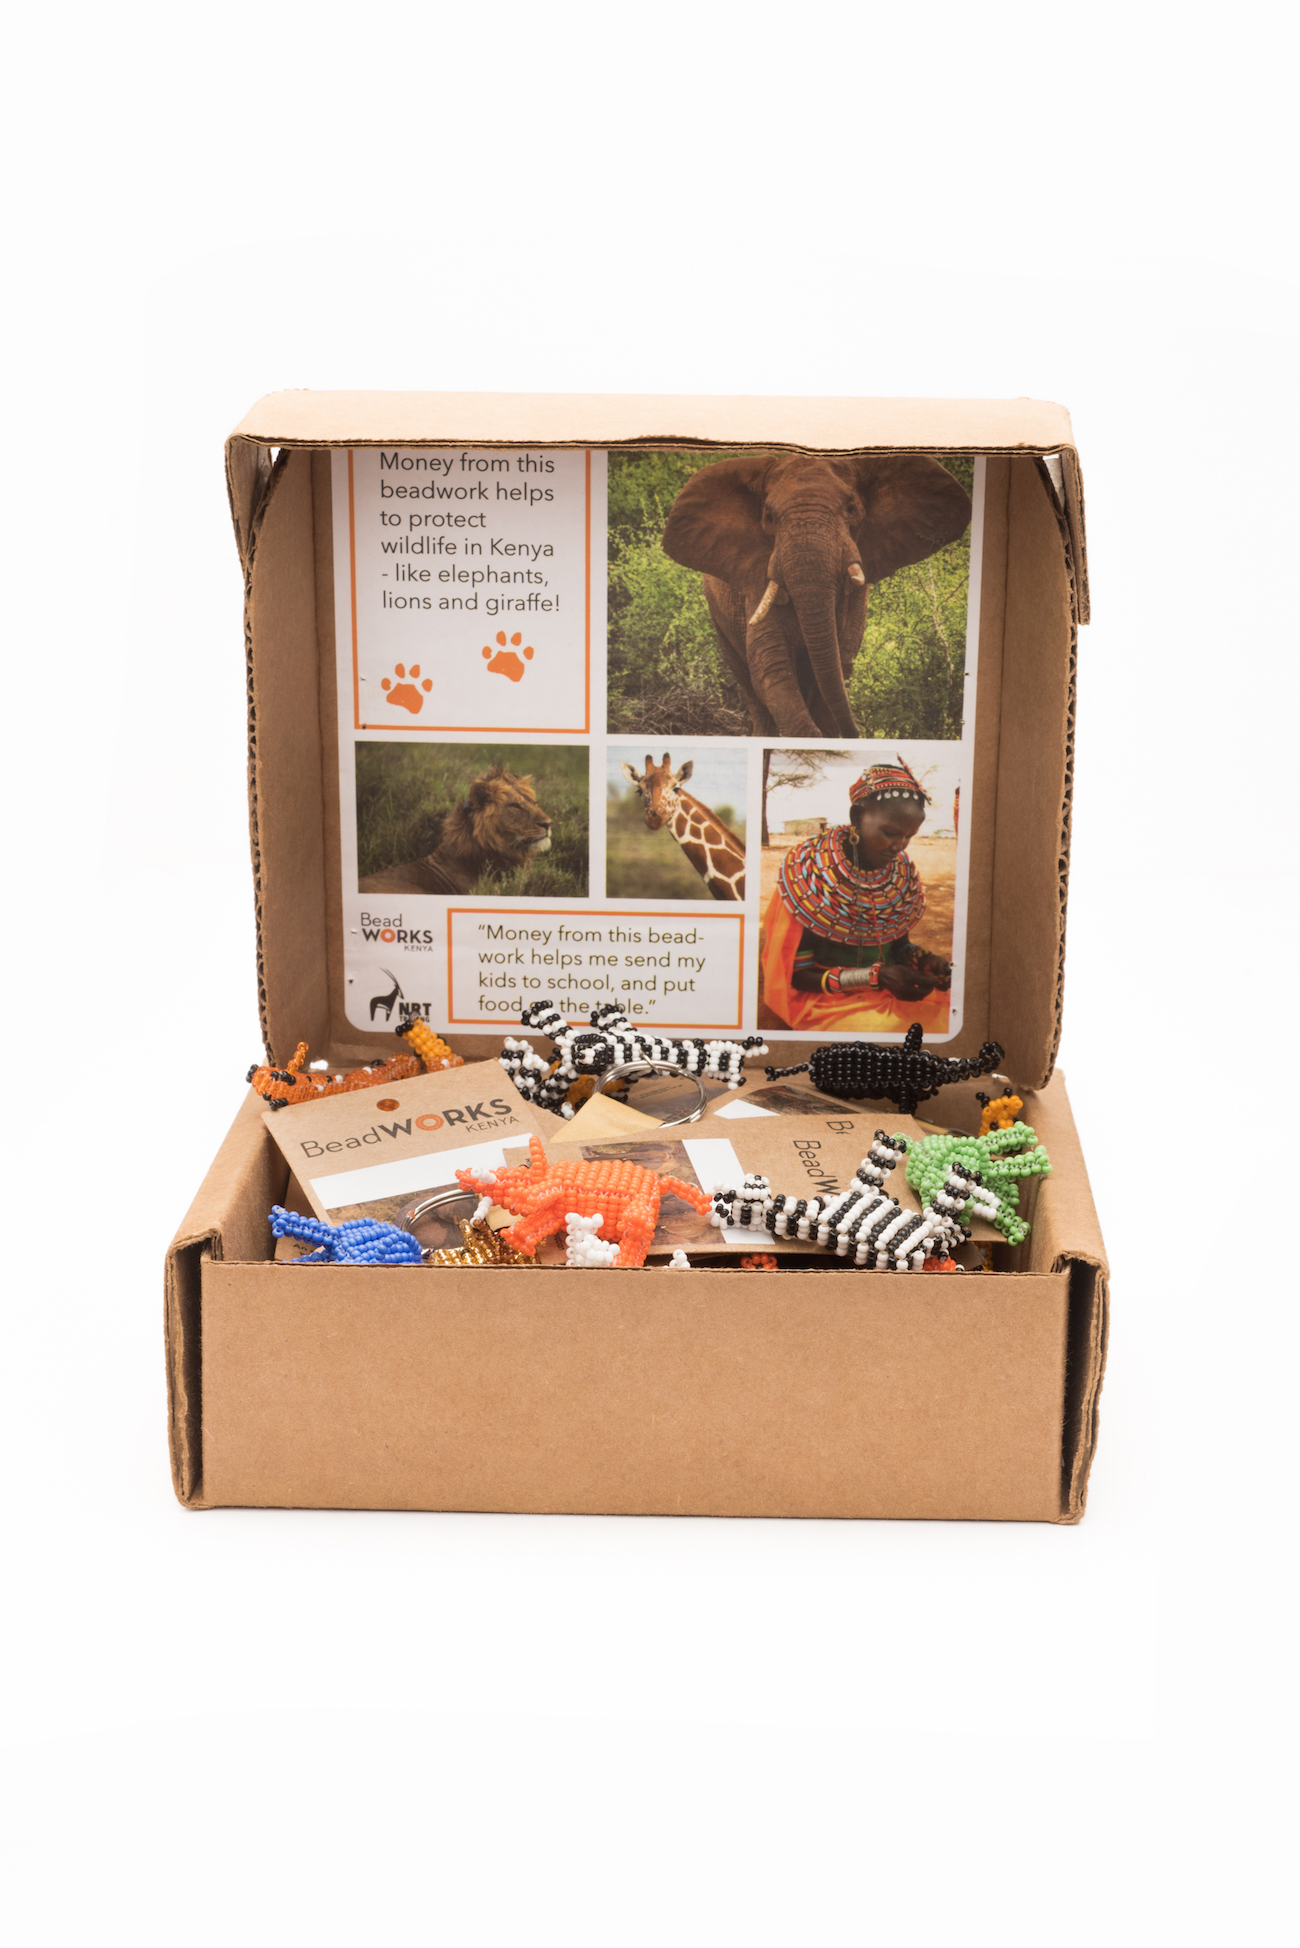 Display/ fundraising boxes